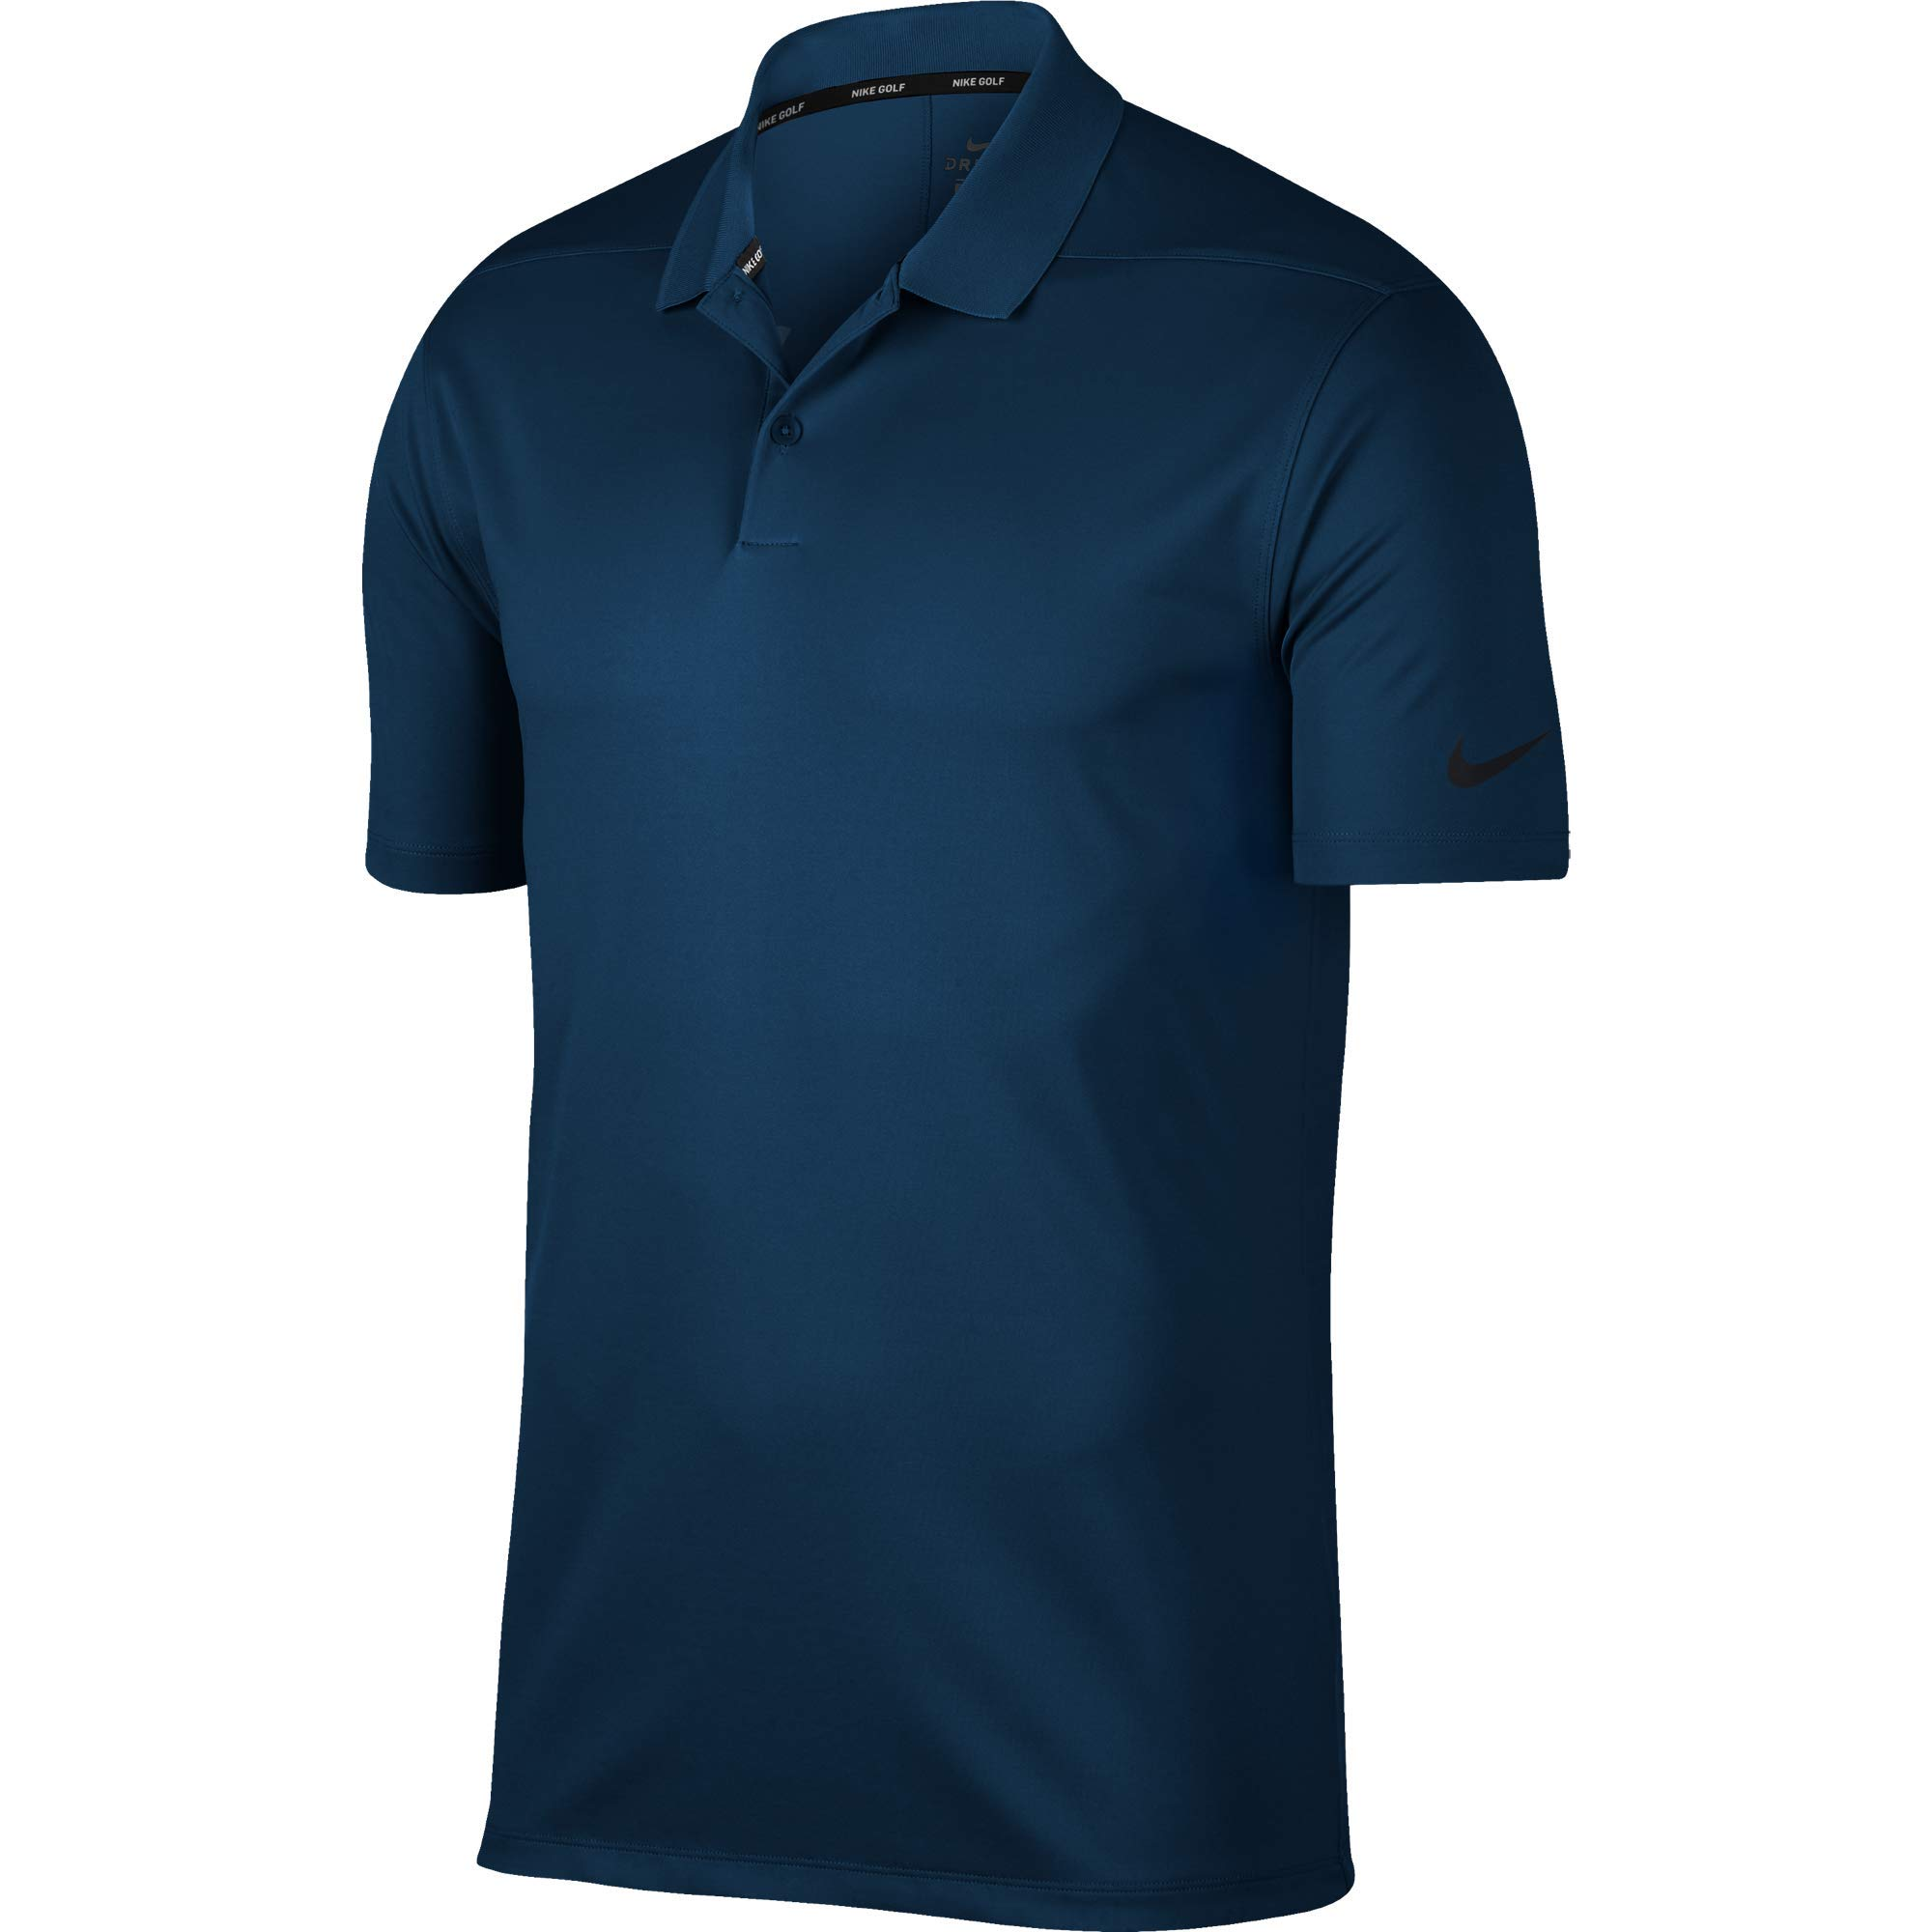 Nike Men's Dry Victory Solid Polo Golf Shirt, College Navy/Black, XX-Large by Nike